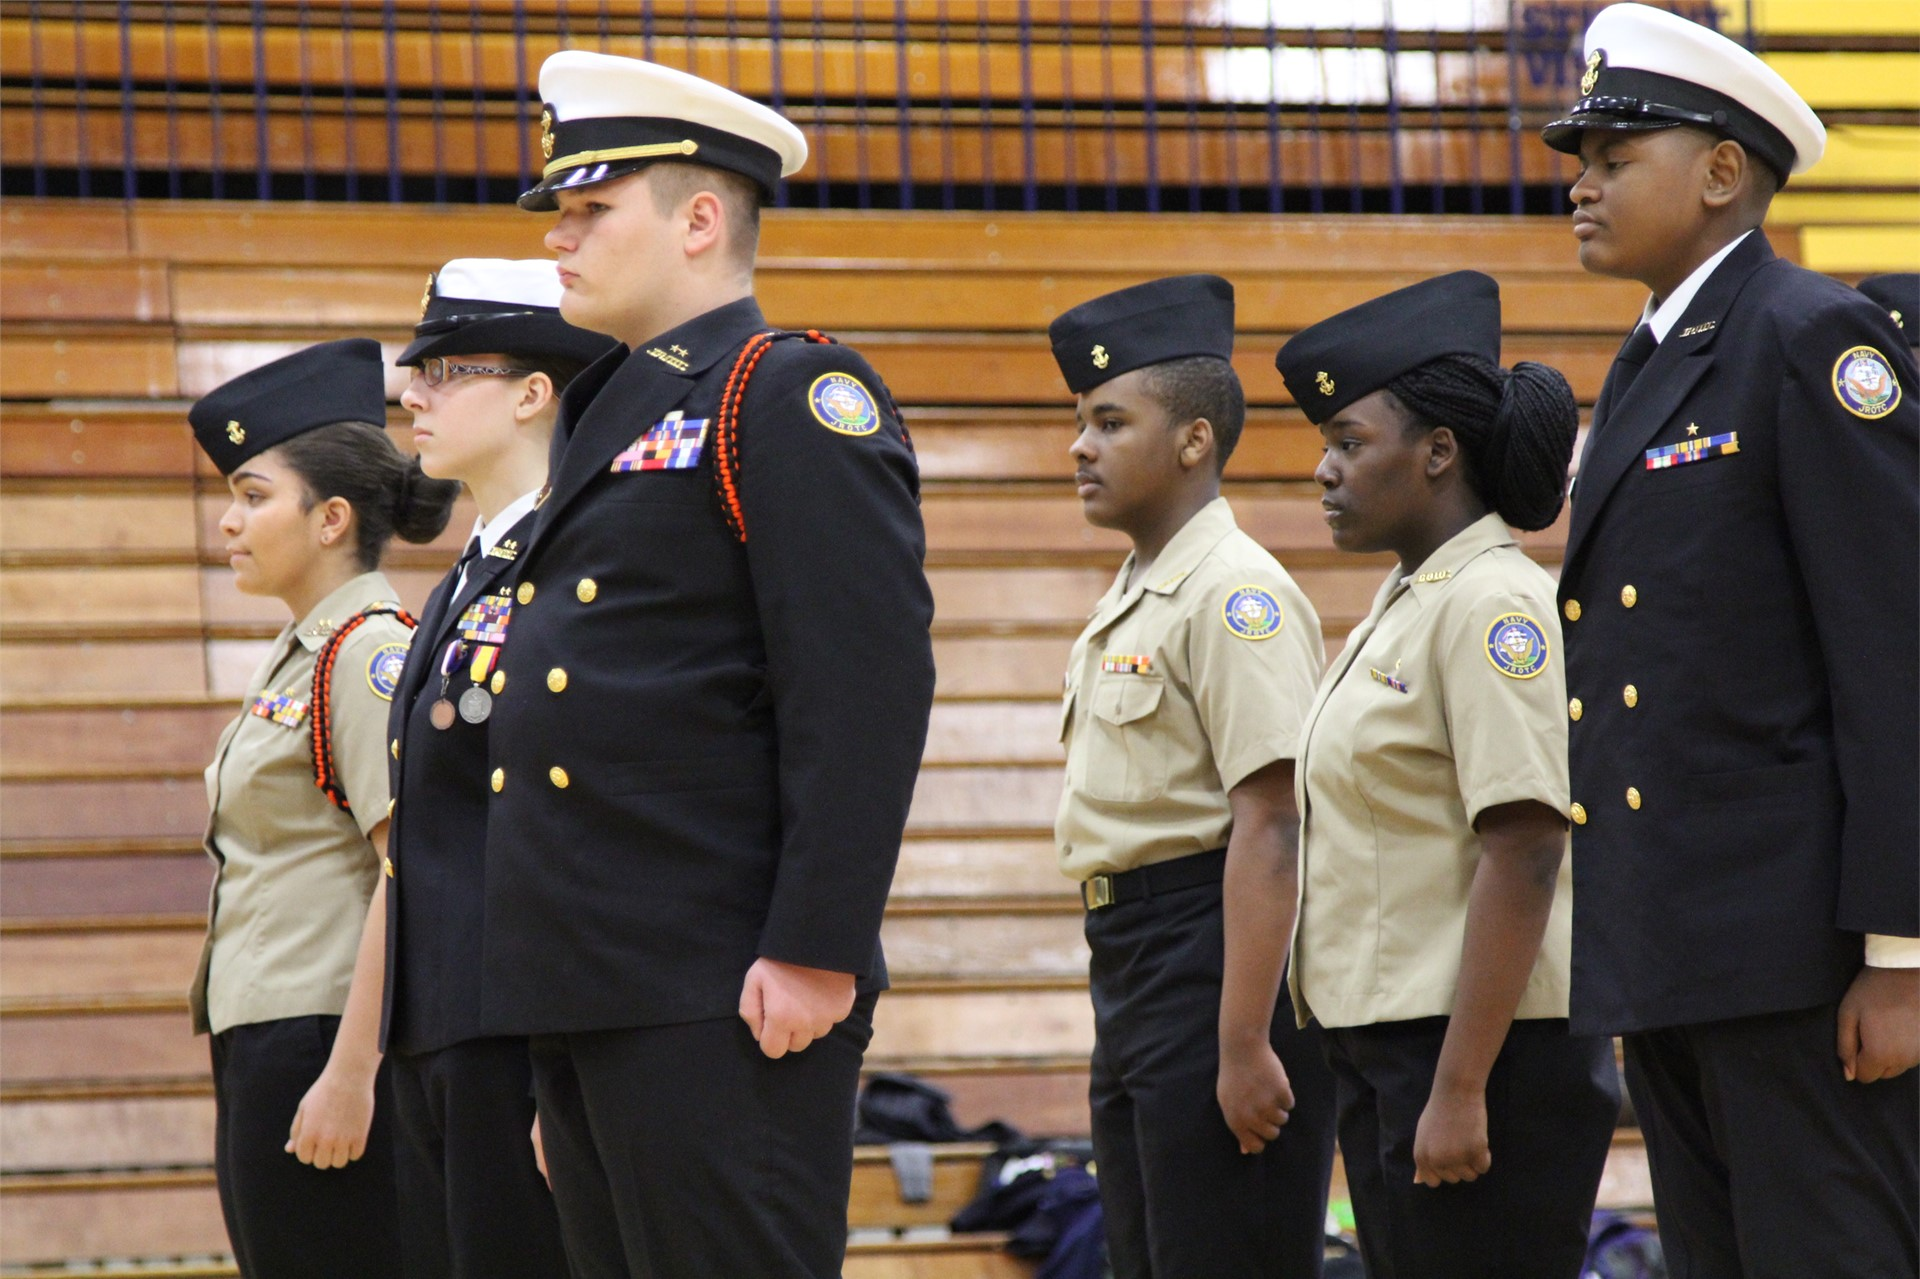 NJROTC students standing at attention